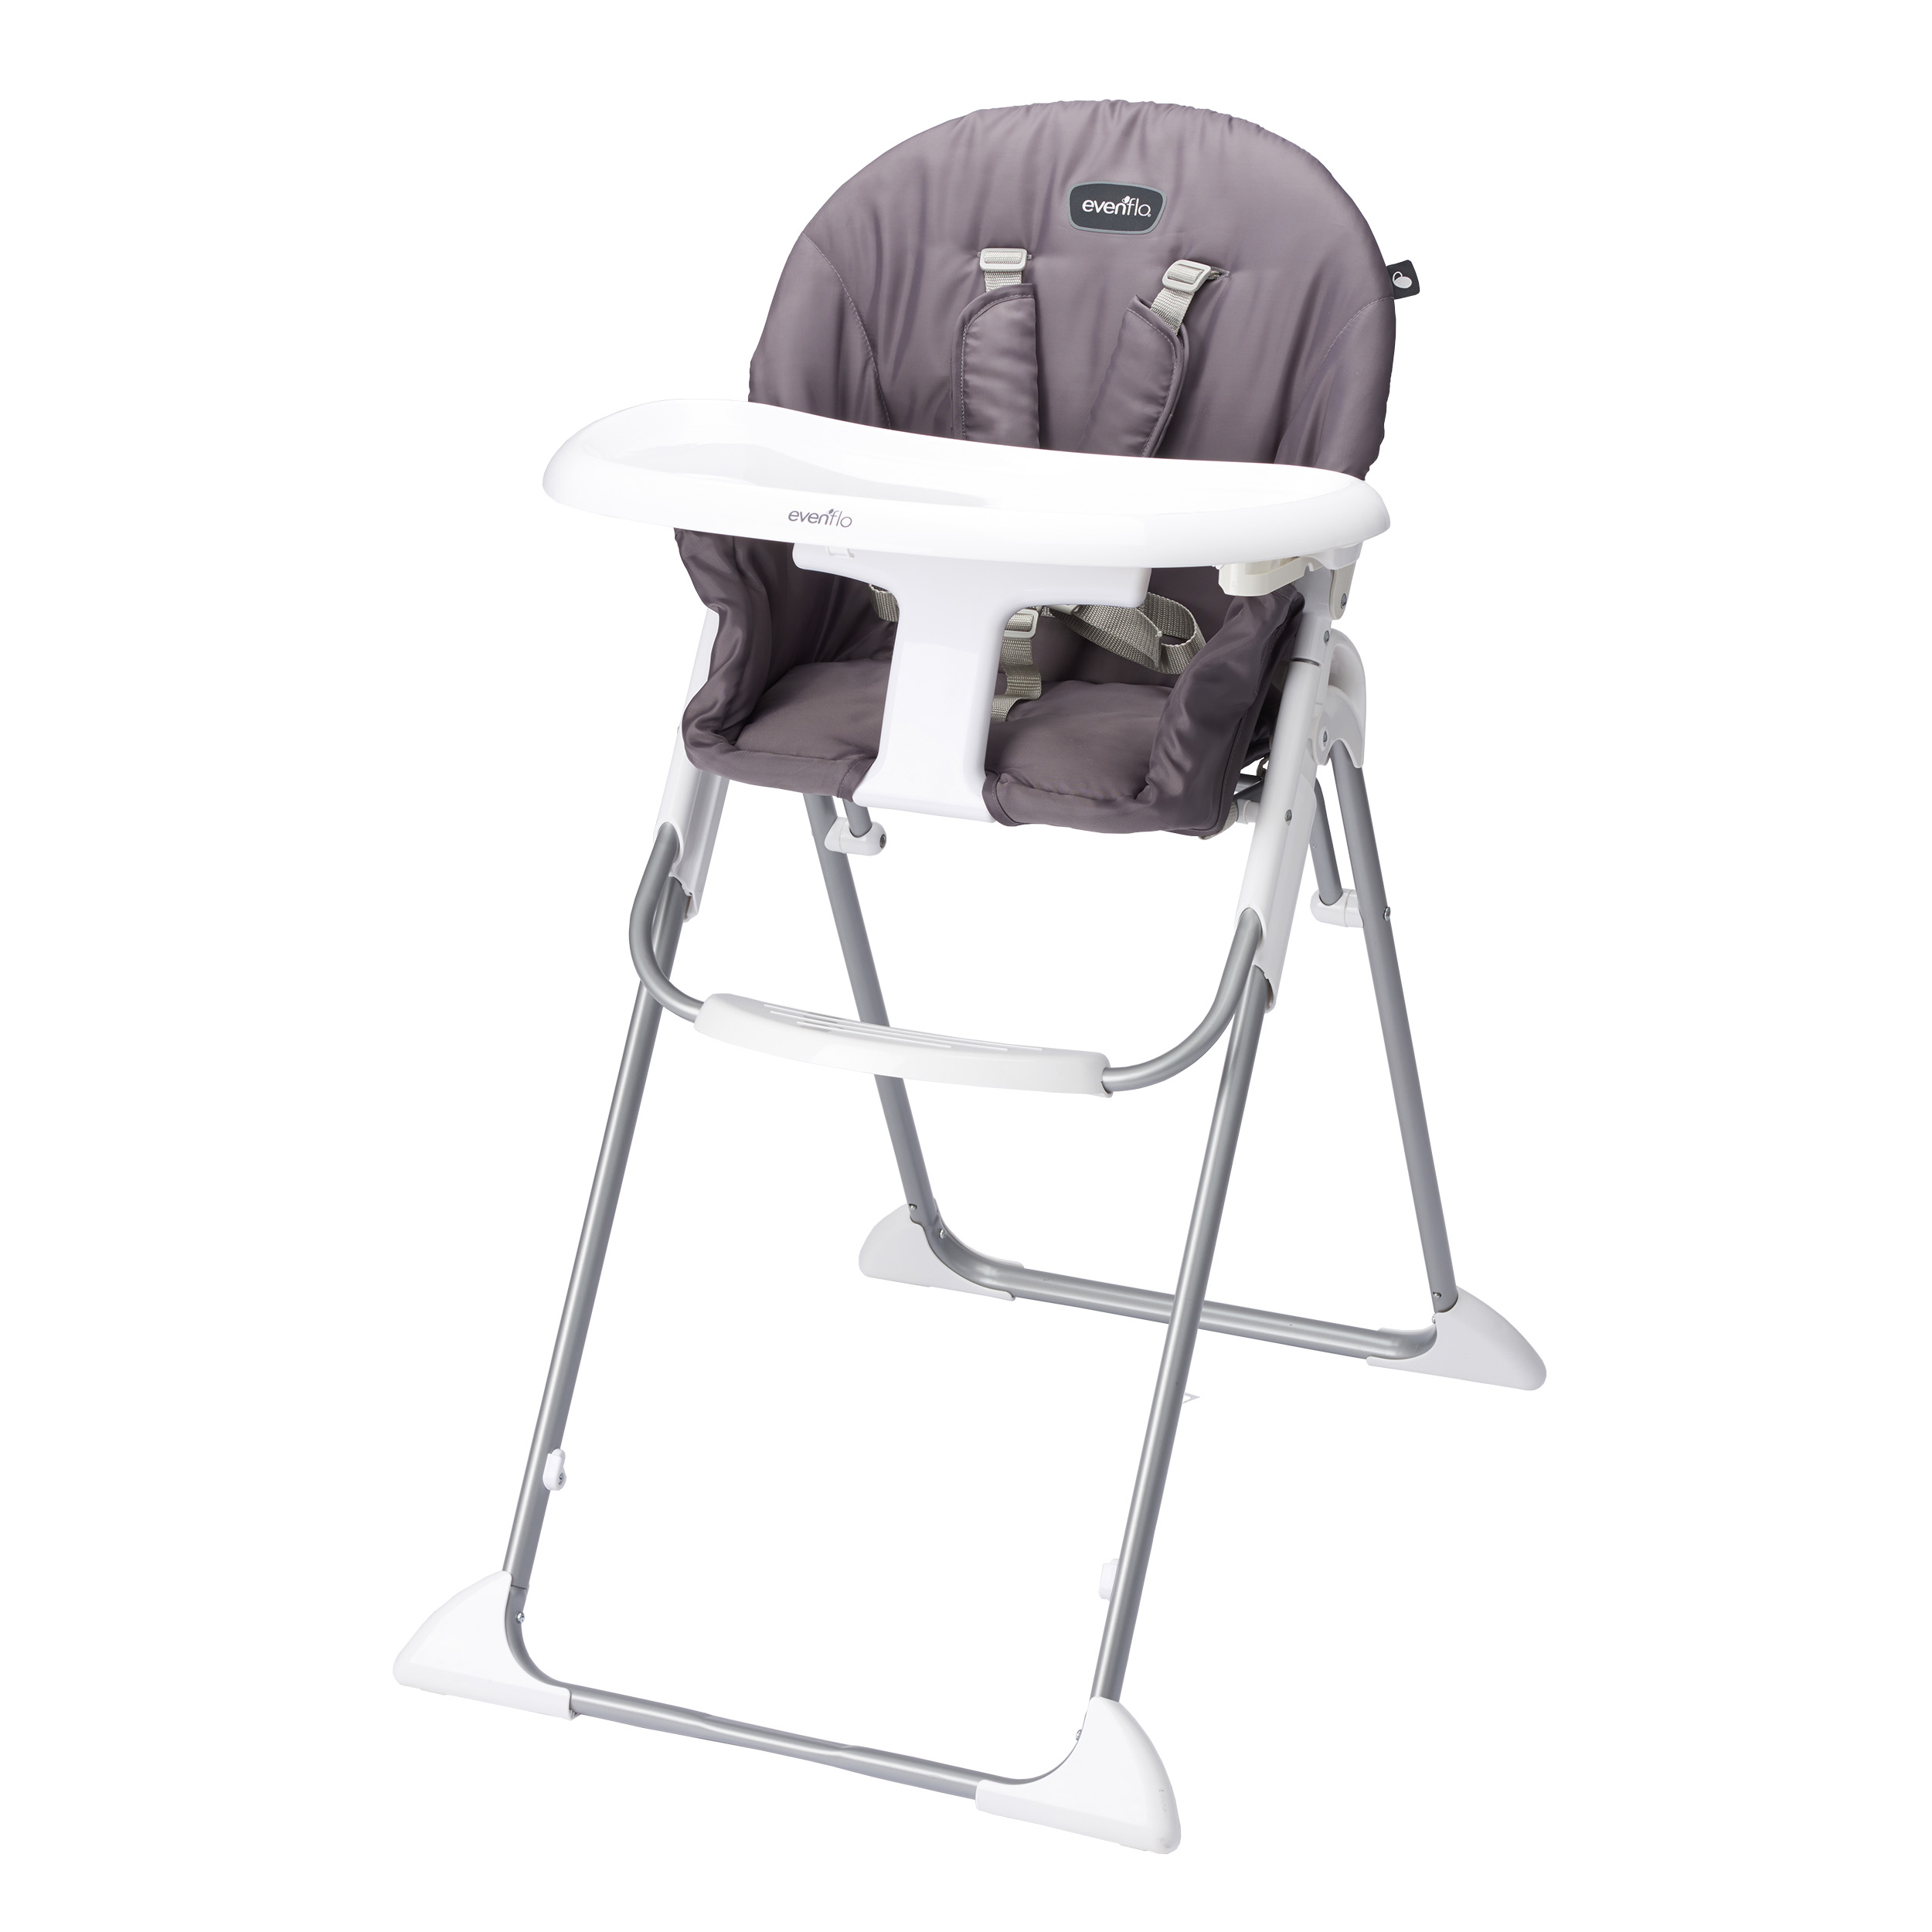 Evenflo Clifton High Chair, Smoke Gray